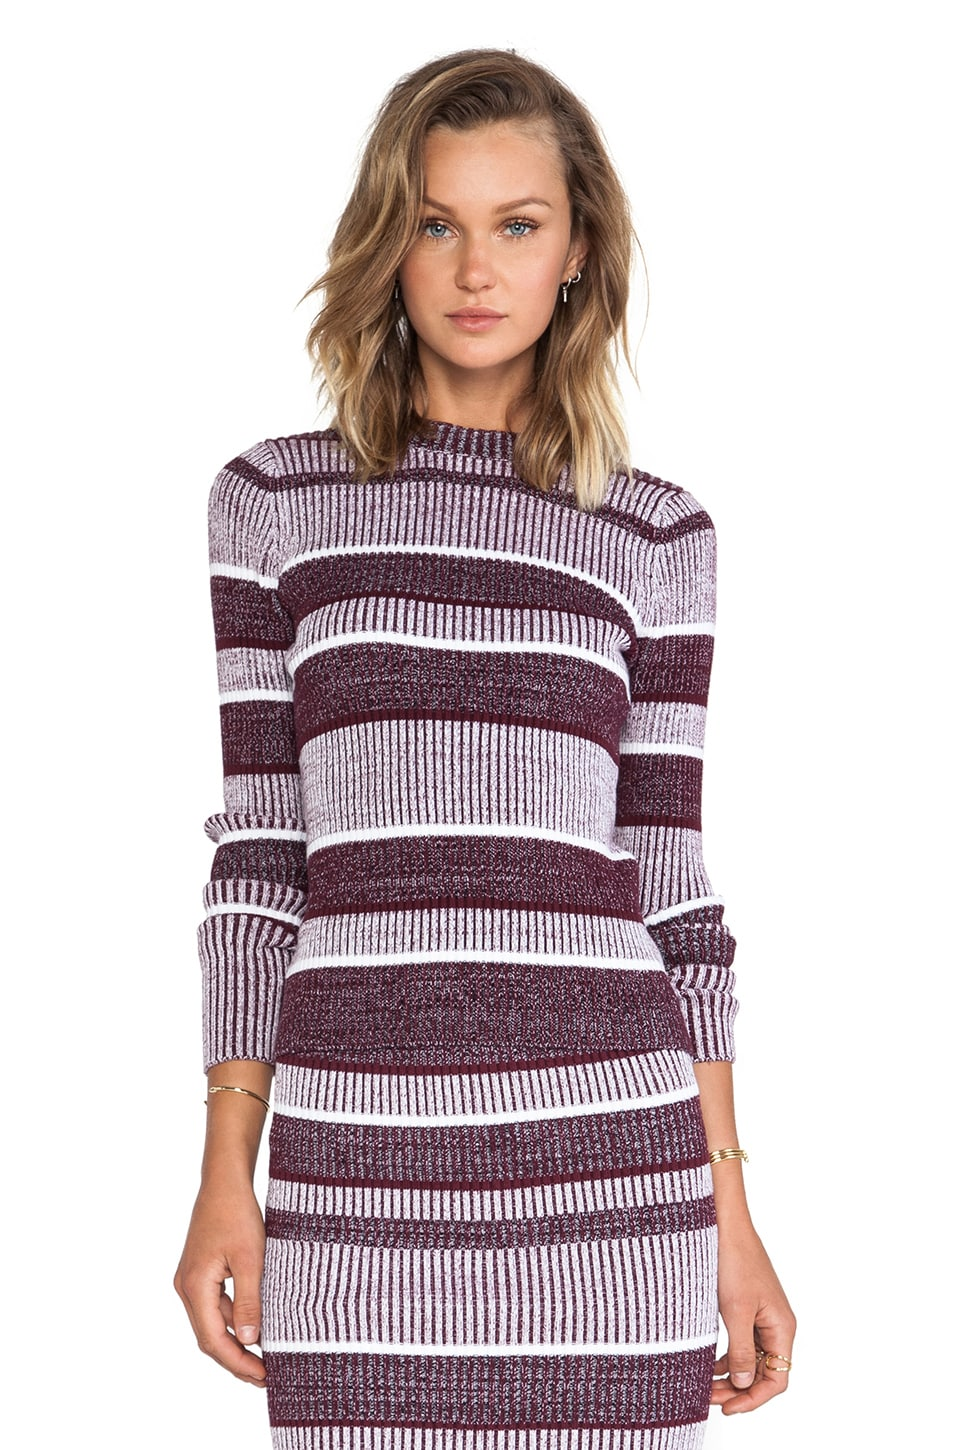 T by Alexander Wang 2 x 2 Rib Long Sleeve Mock Neck Top in Bordeaux